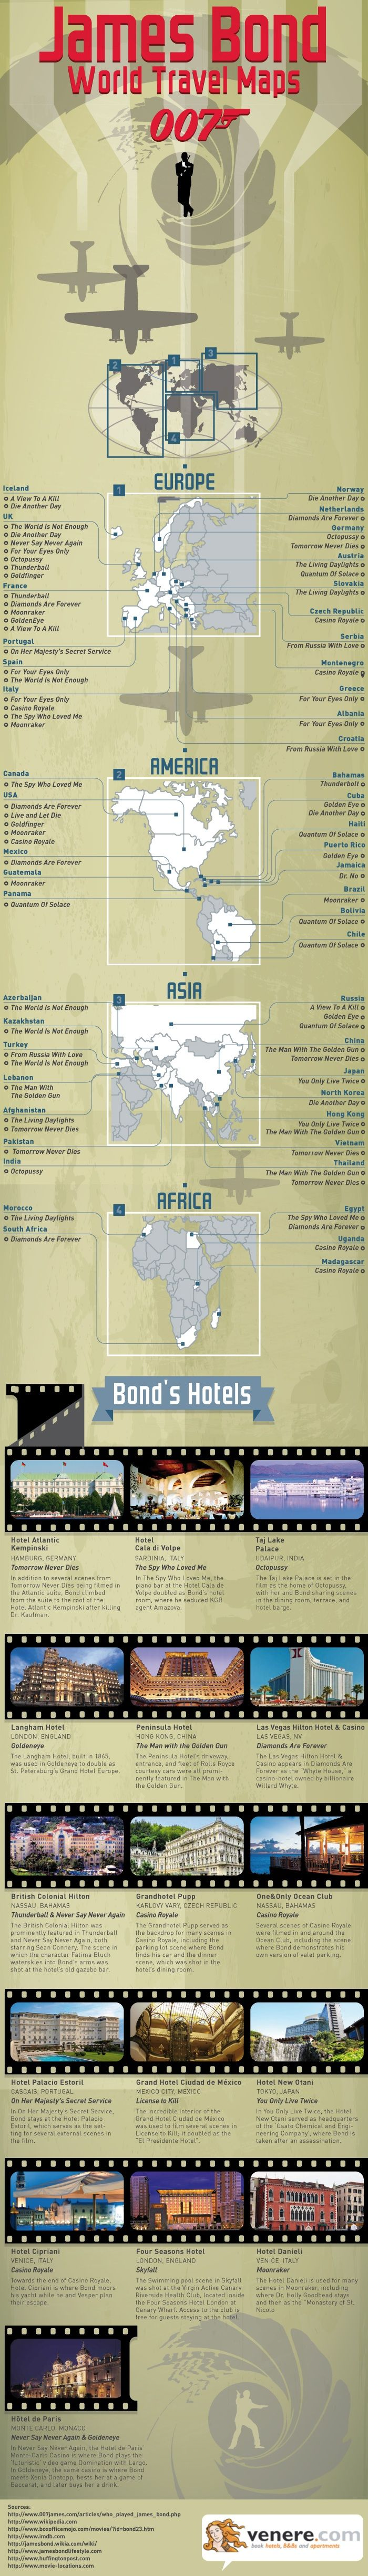 James Bond World Travel Map and